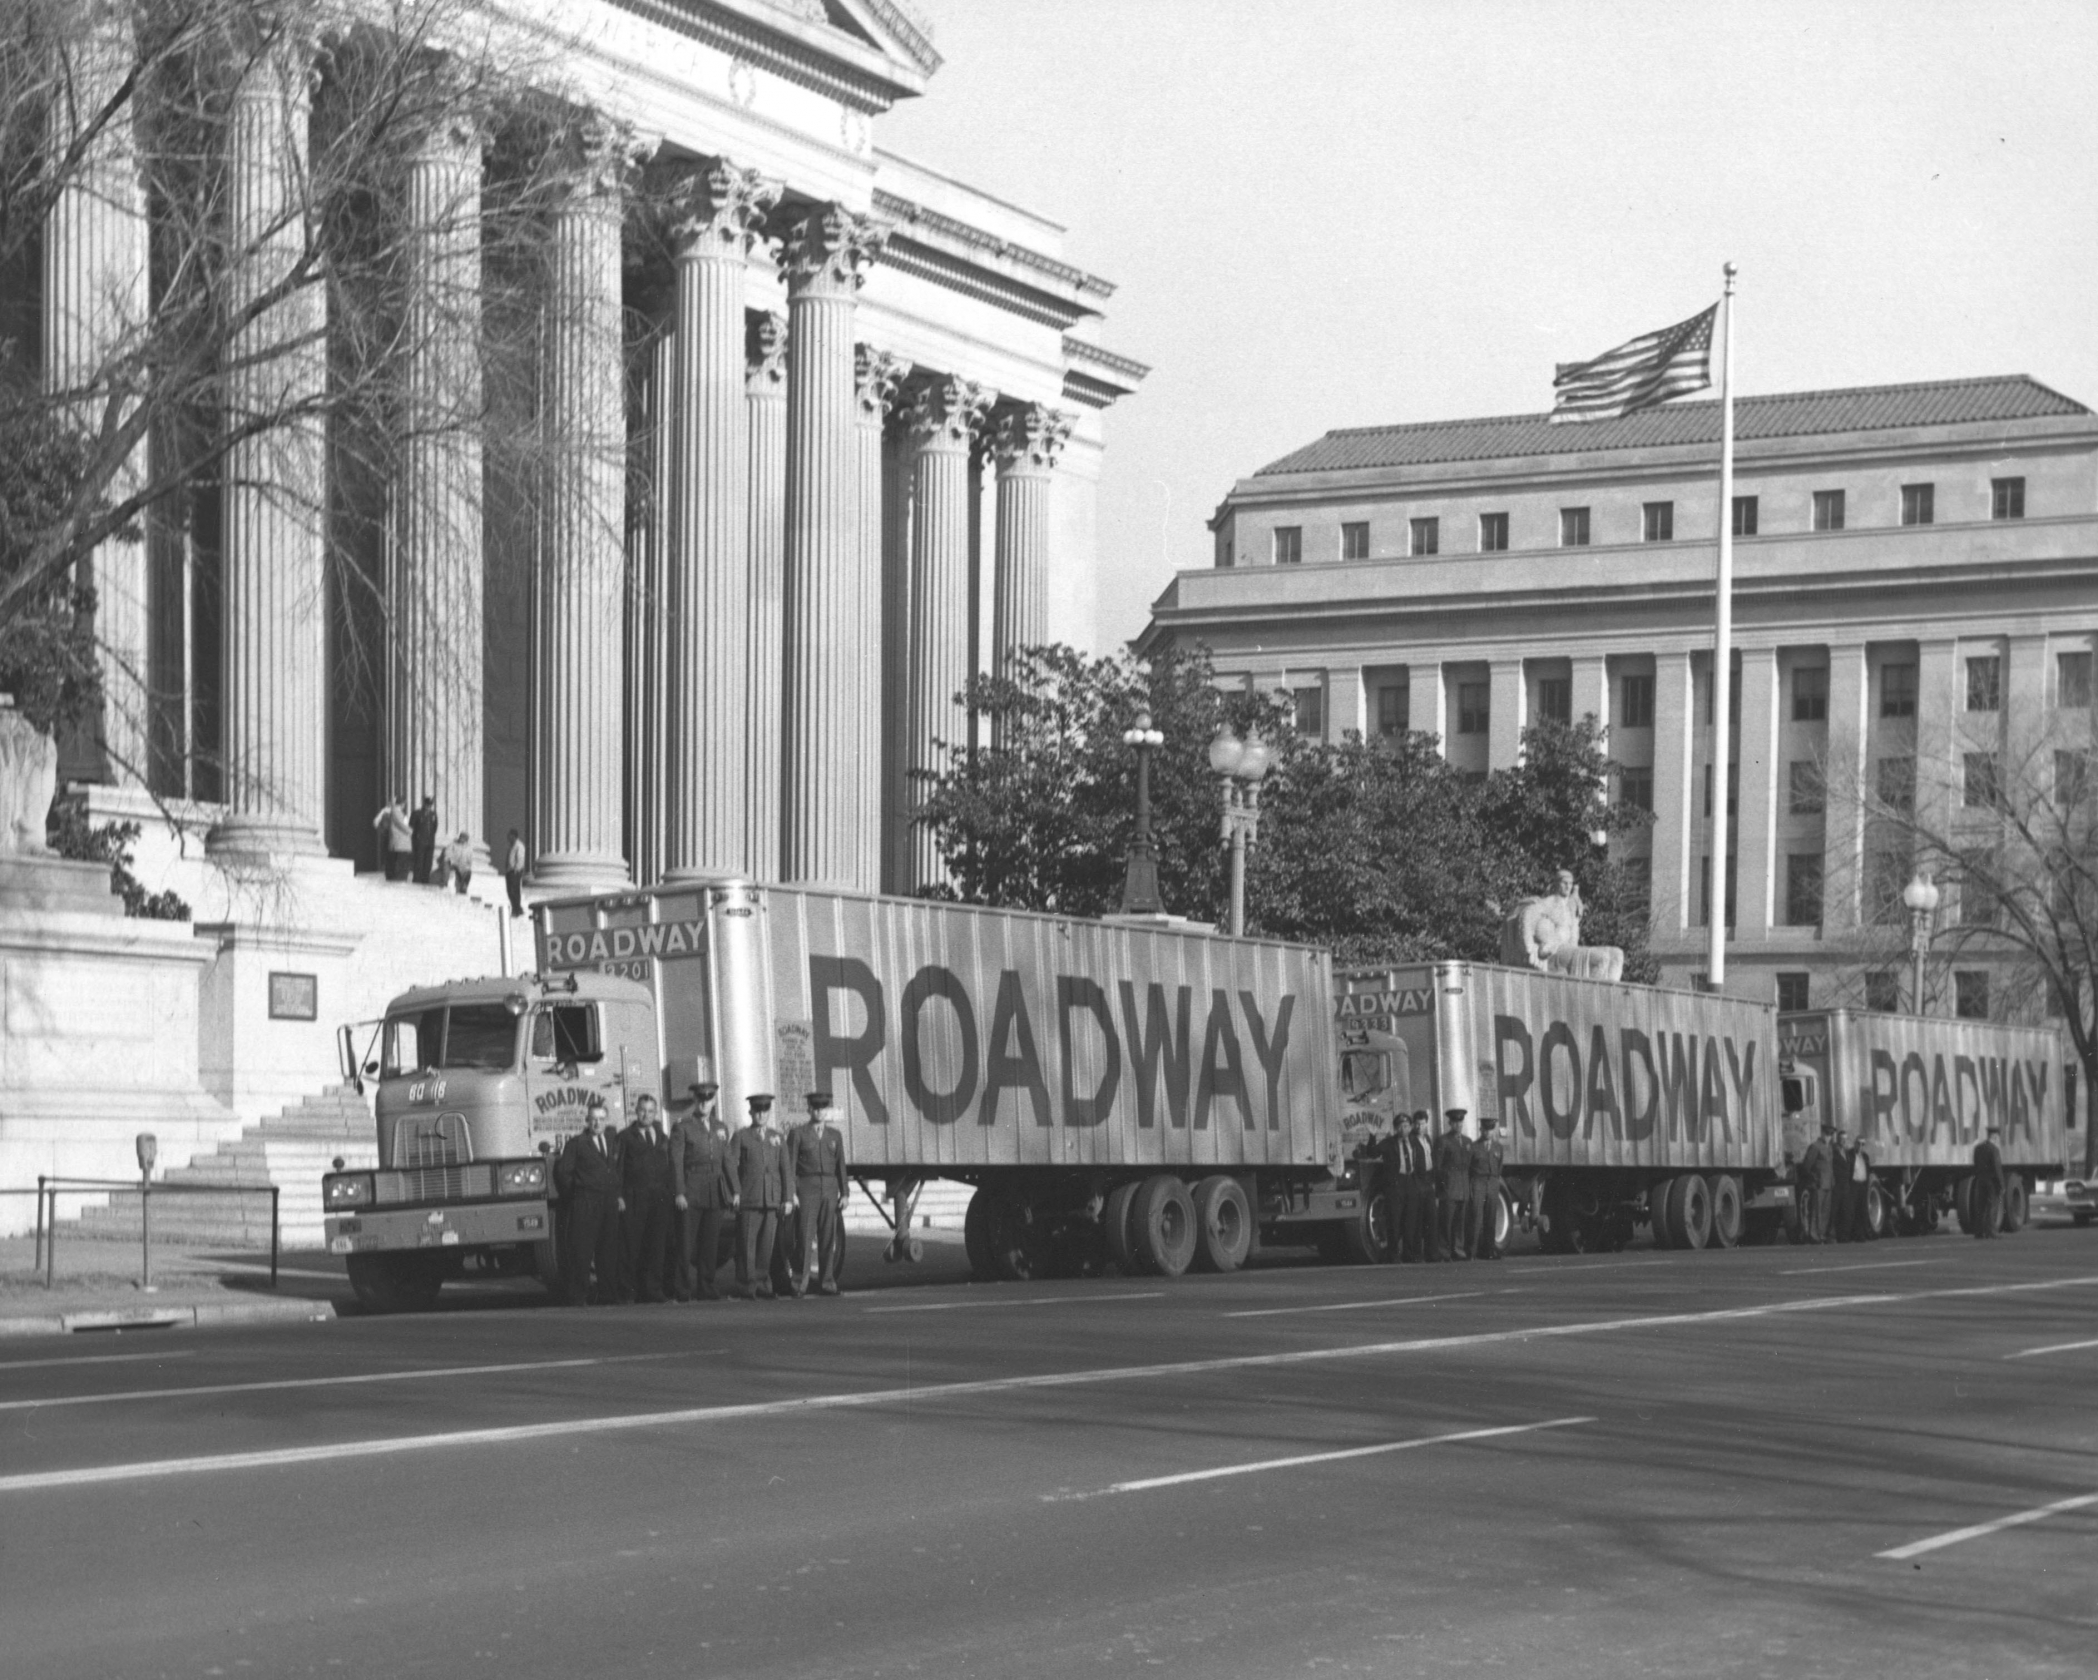 Three forty-foot trailer trucks carrying President Dwight D. Eisenhower personal files and records